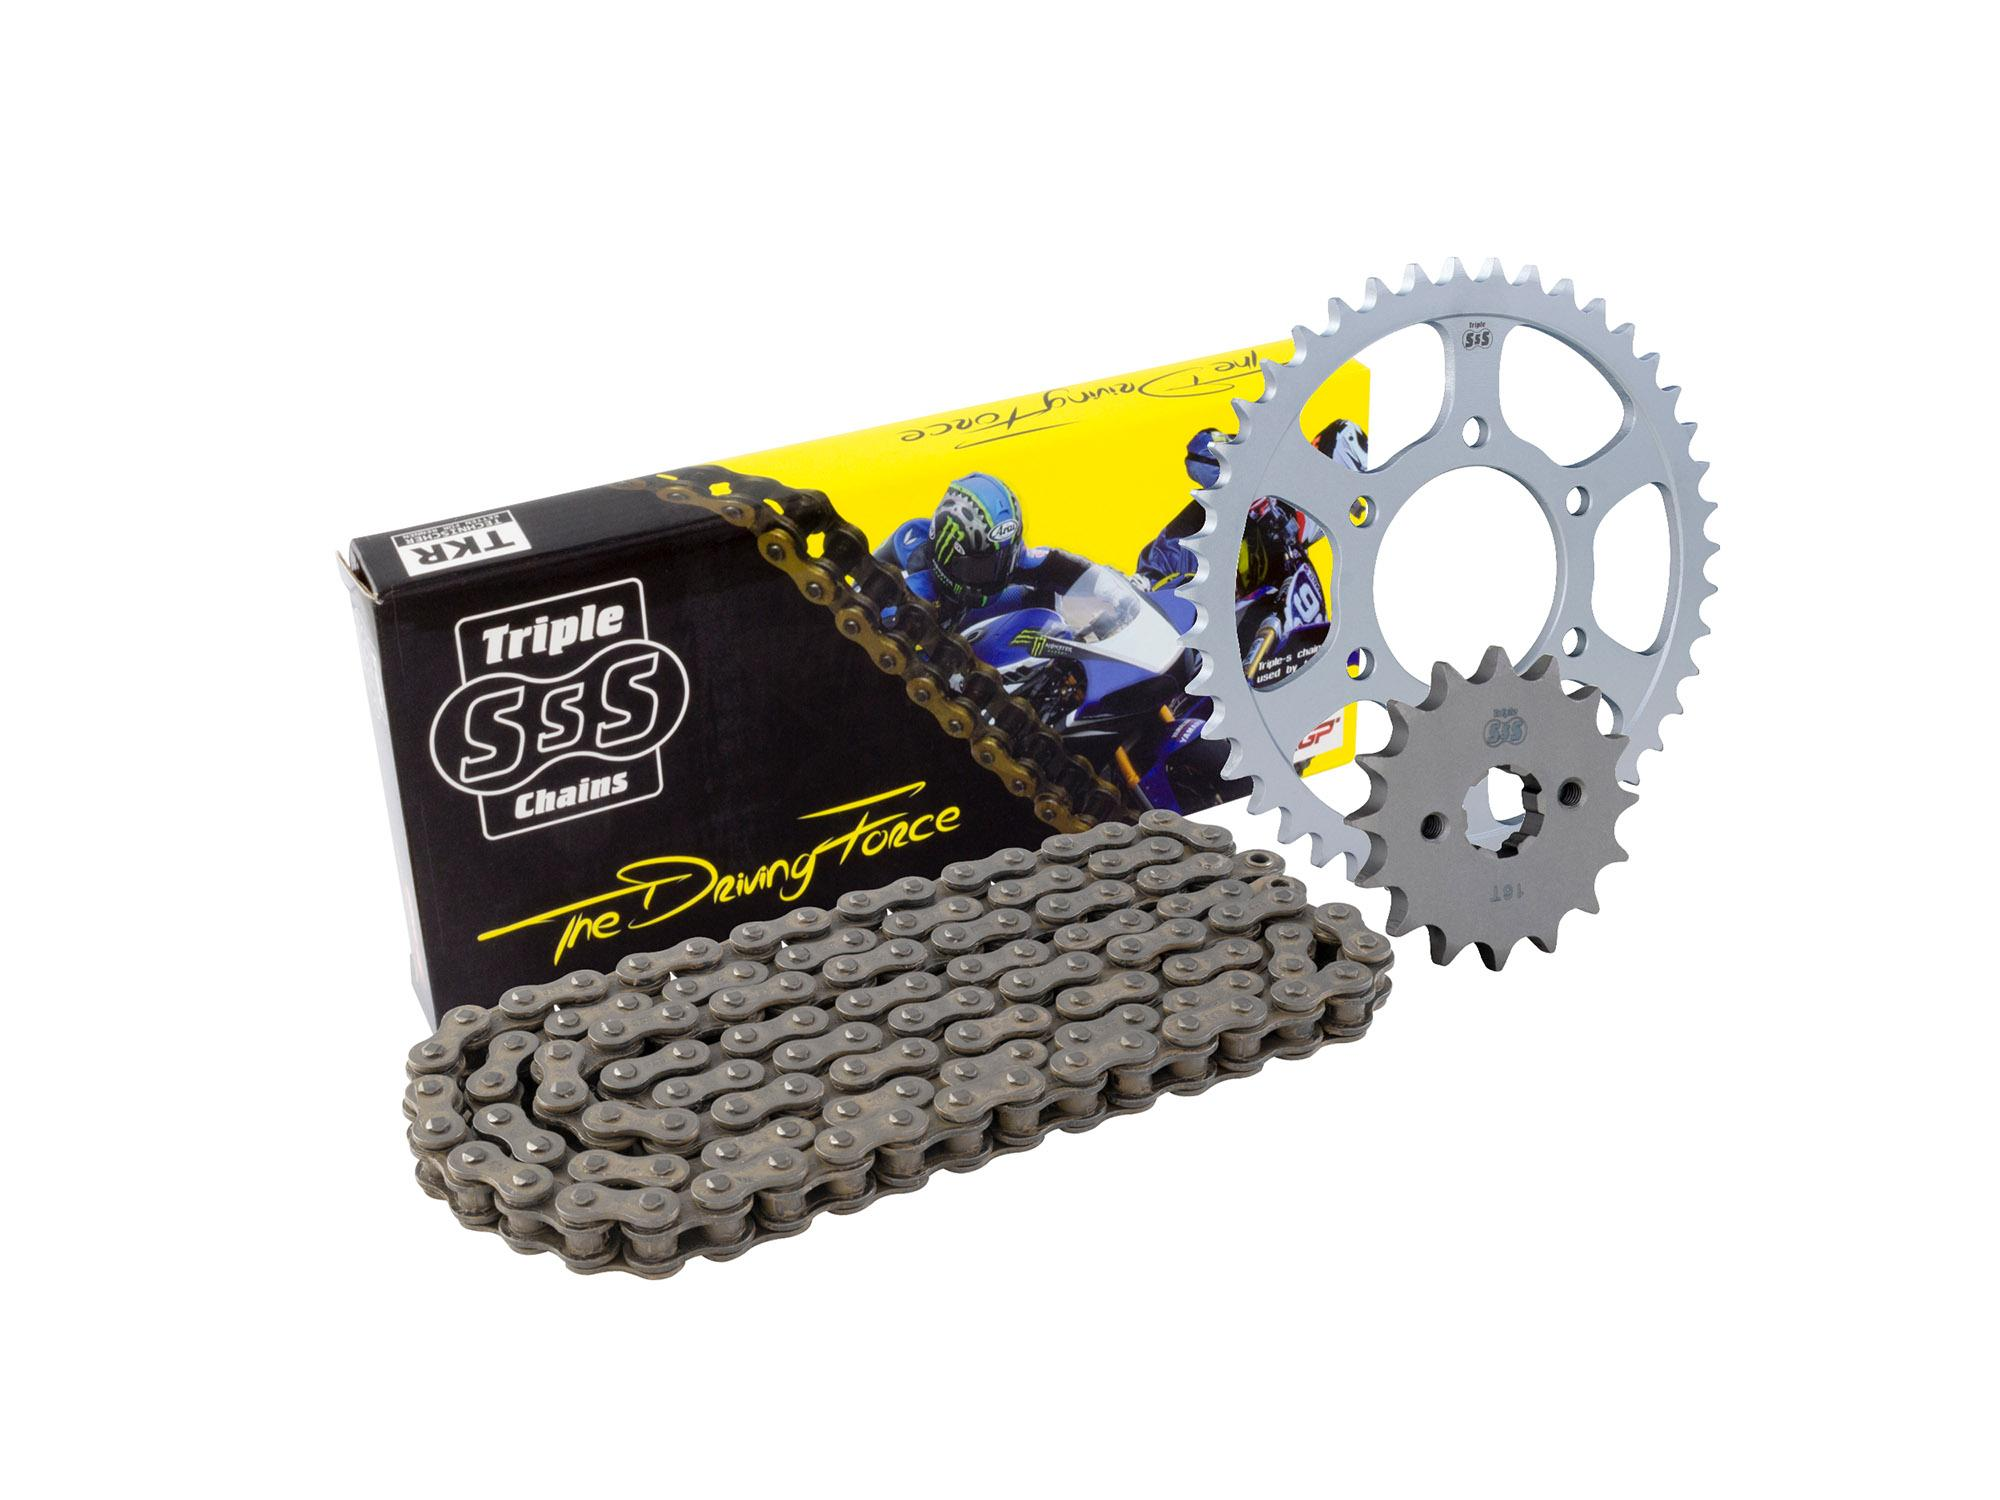 Honda NC700 12-13 Chain & Sprocket Kit: 16T Front, 43T Rear, HD O-Ring Black Chain 520H 114Link